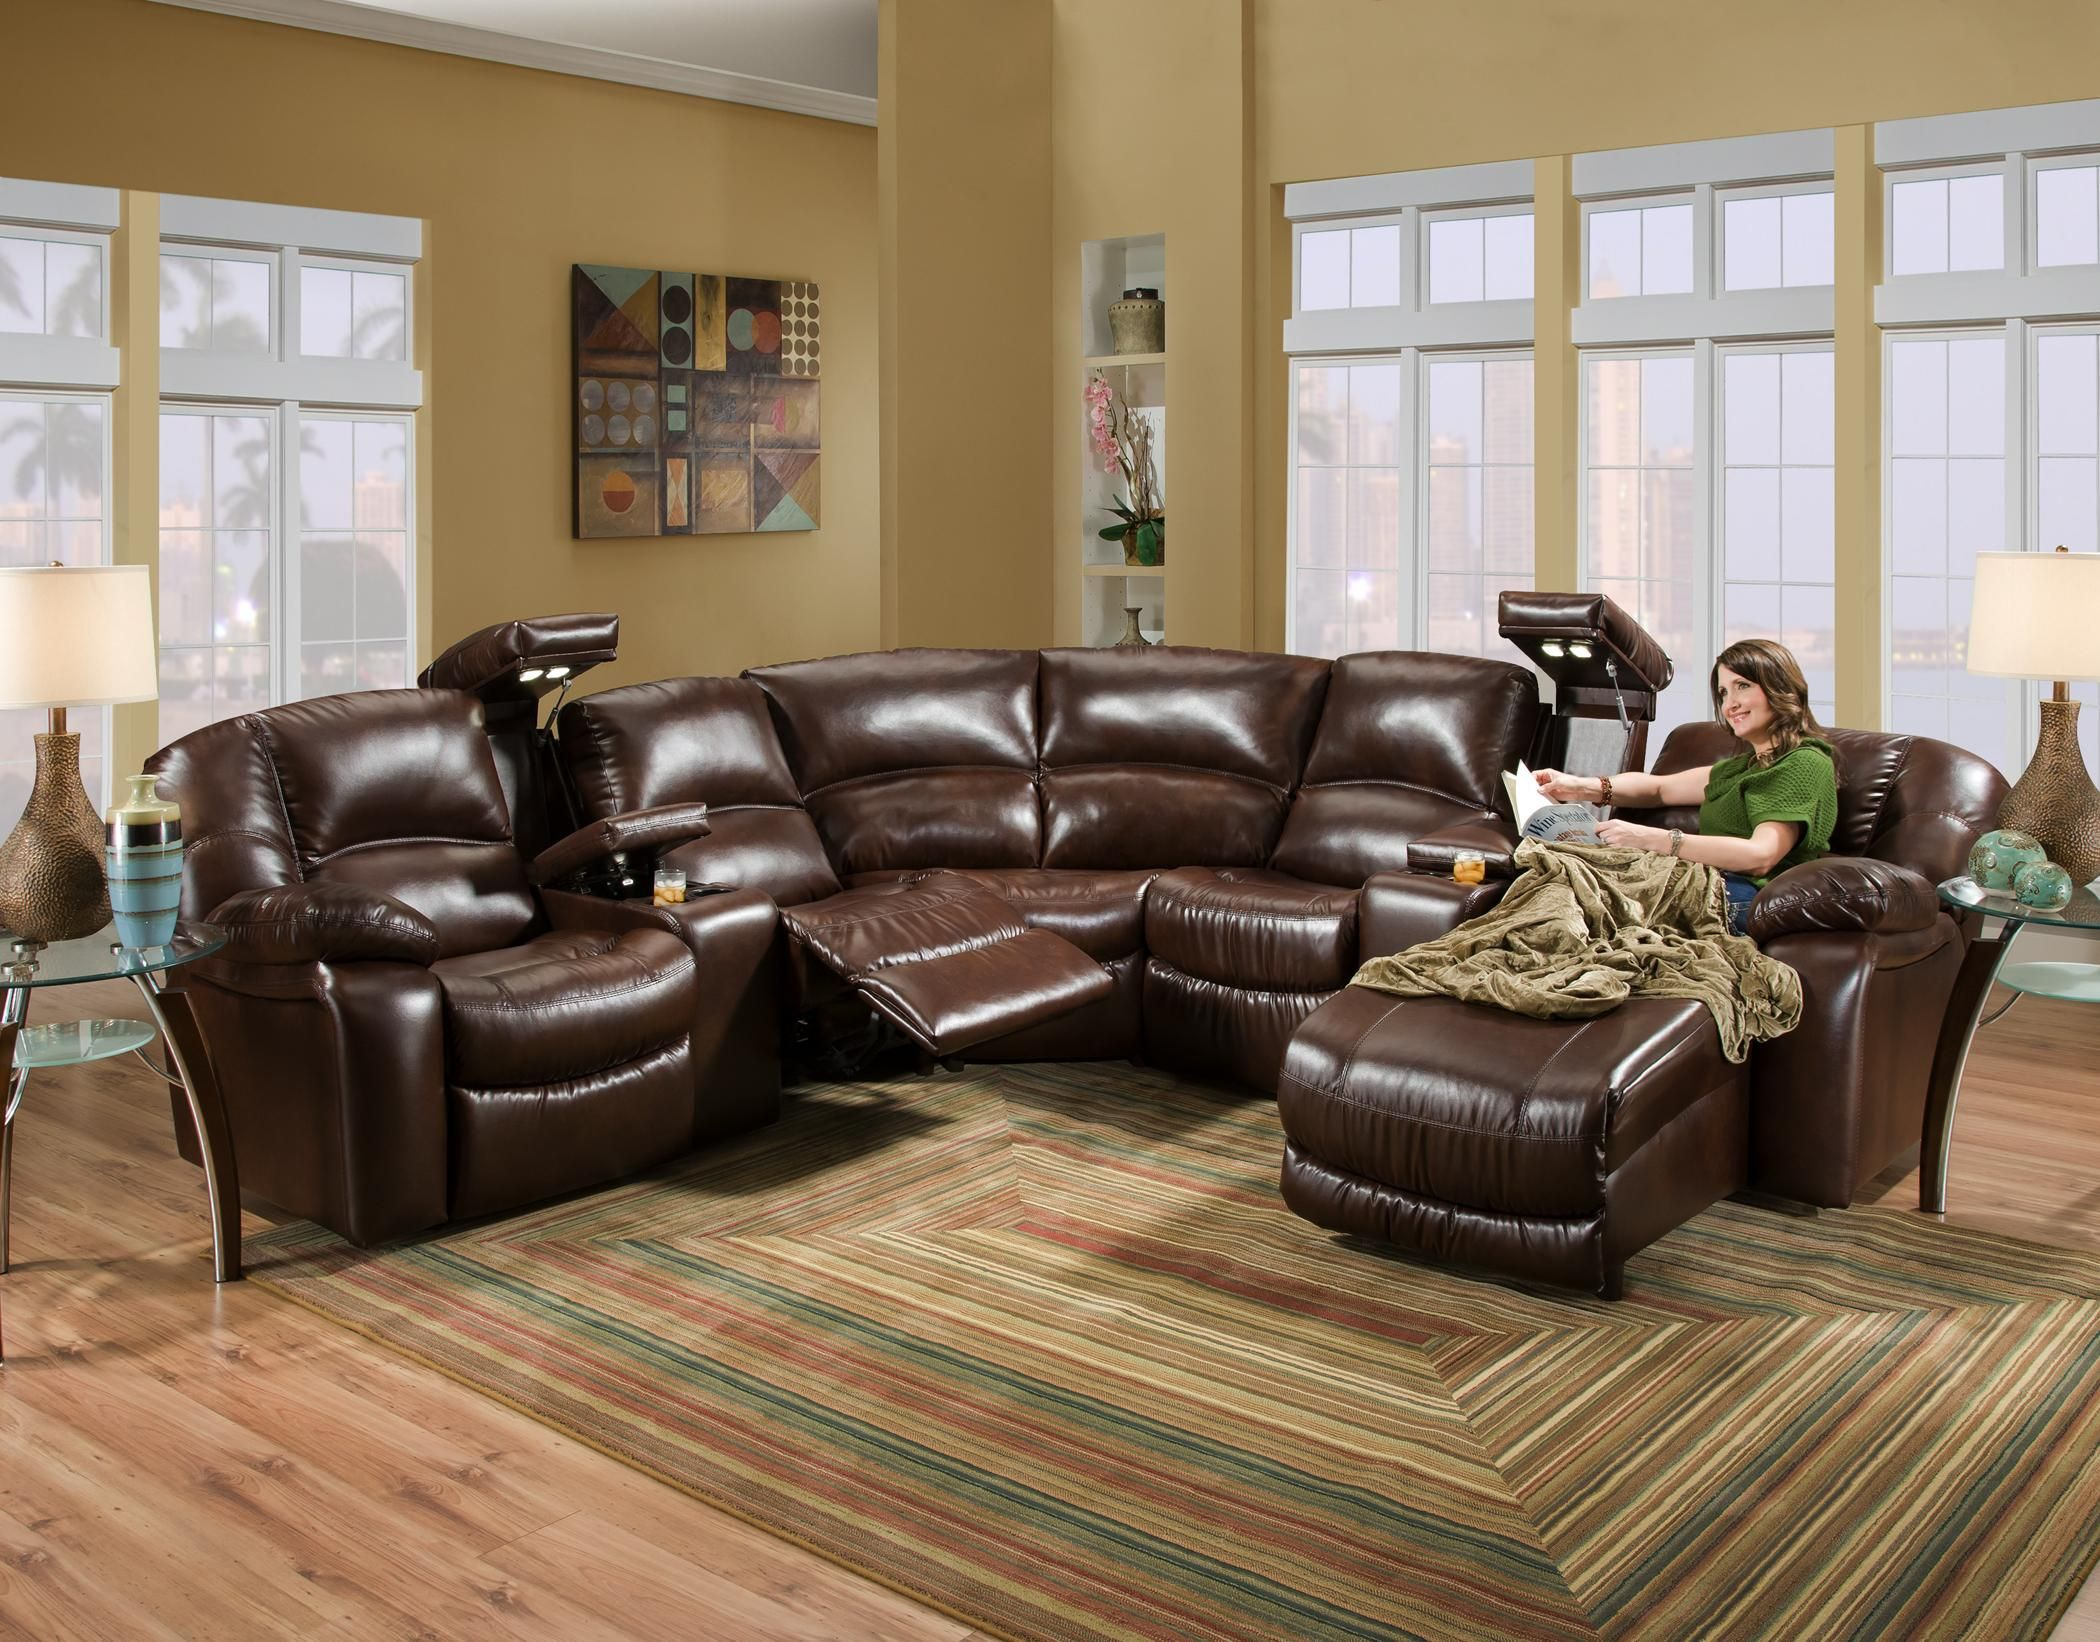 Leather sectional with chase Redecorating Pinterest